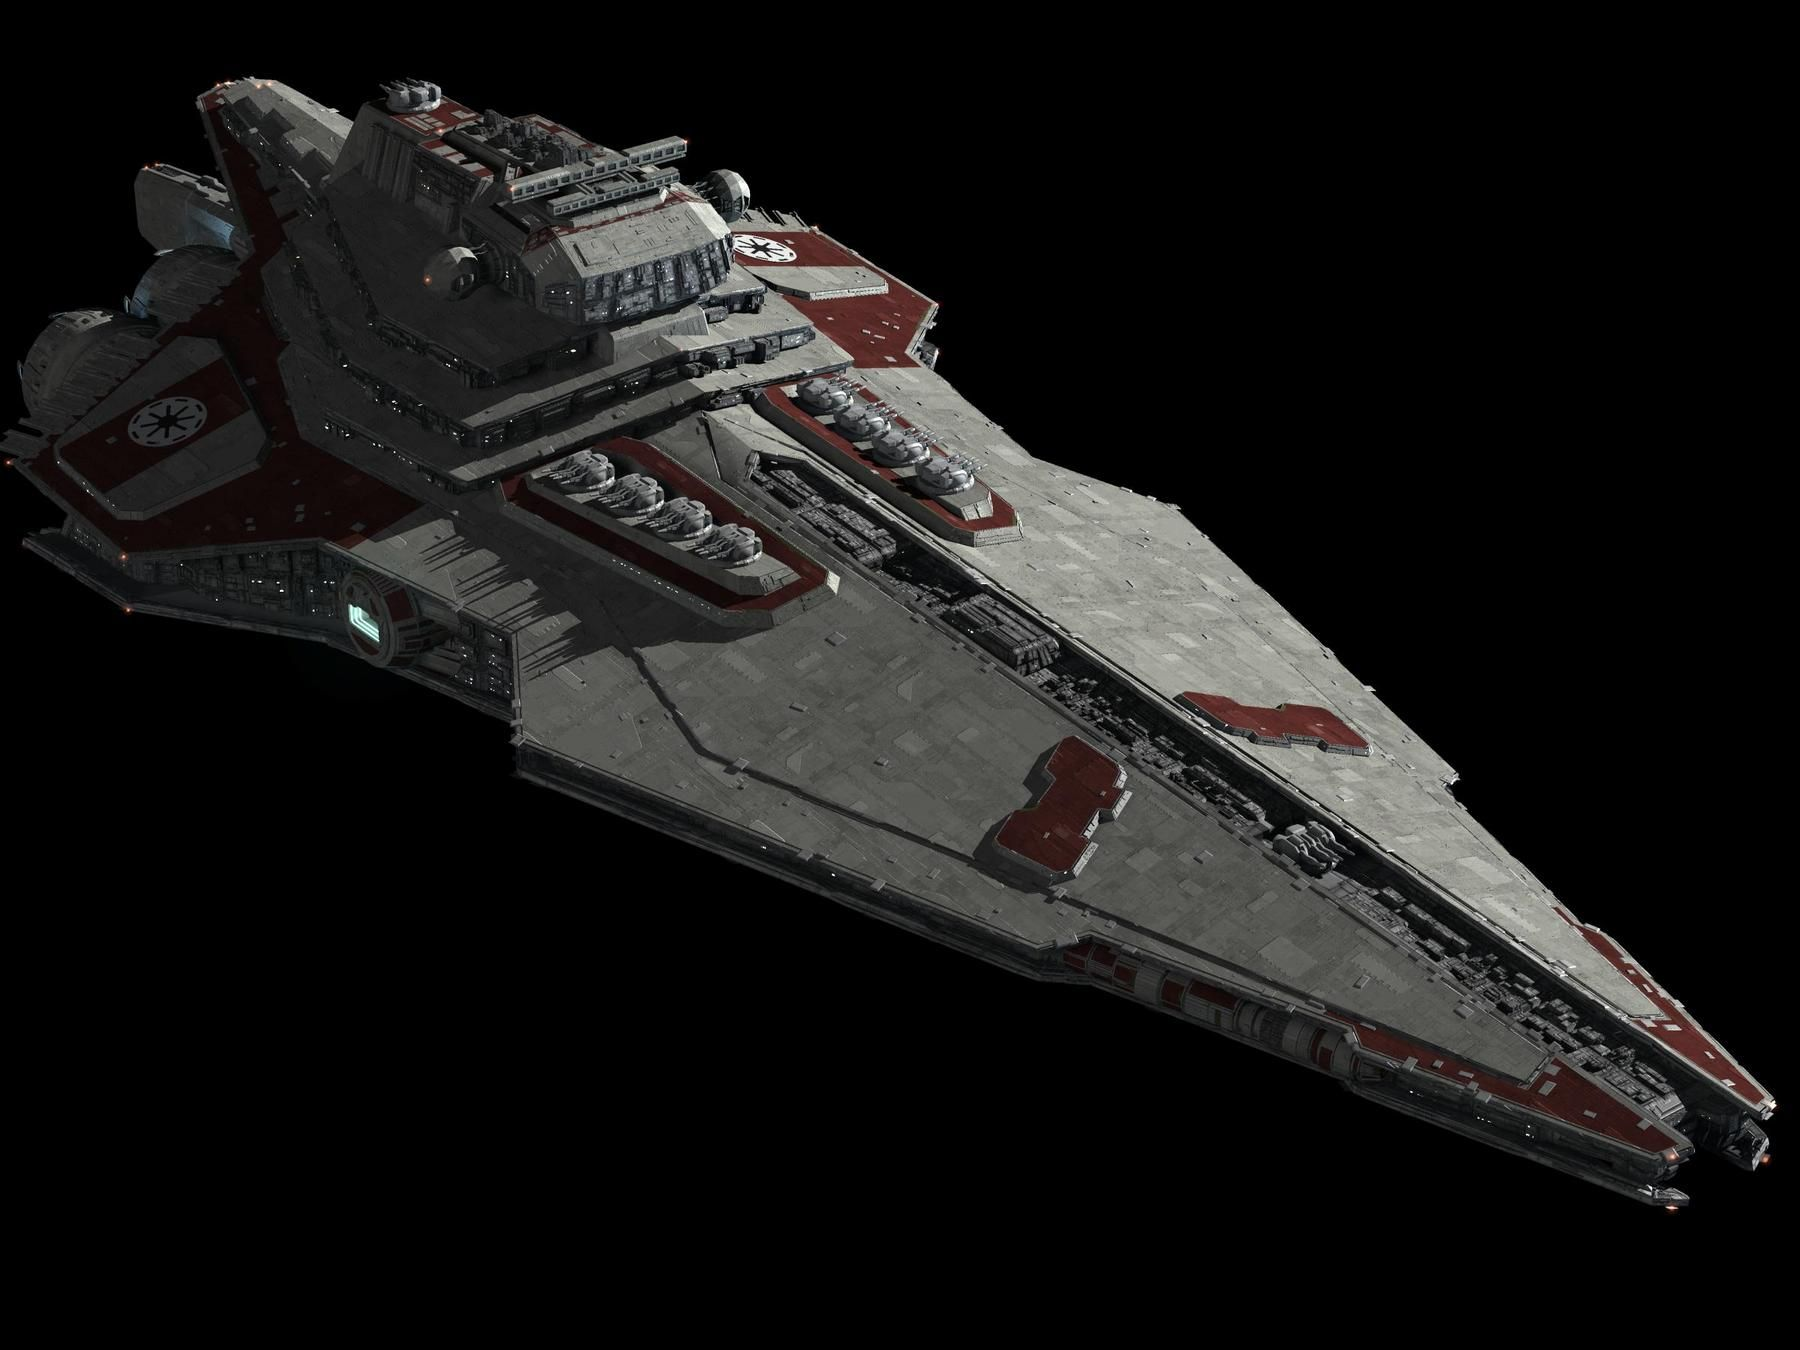 sabre class star destroyer - Google Search | SW Vehicles ...